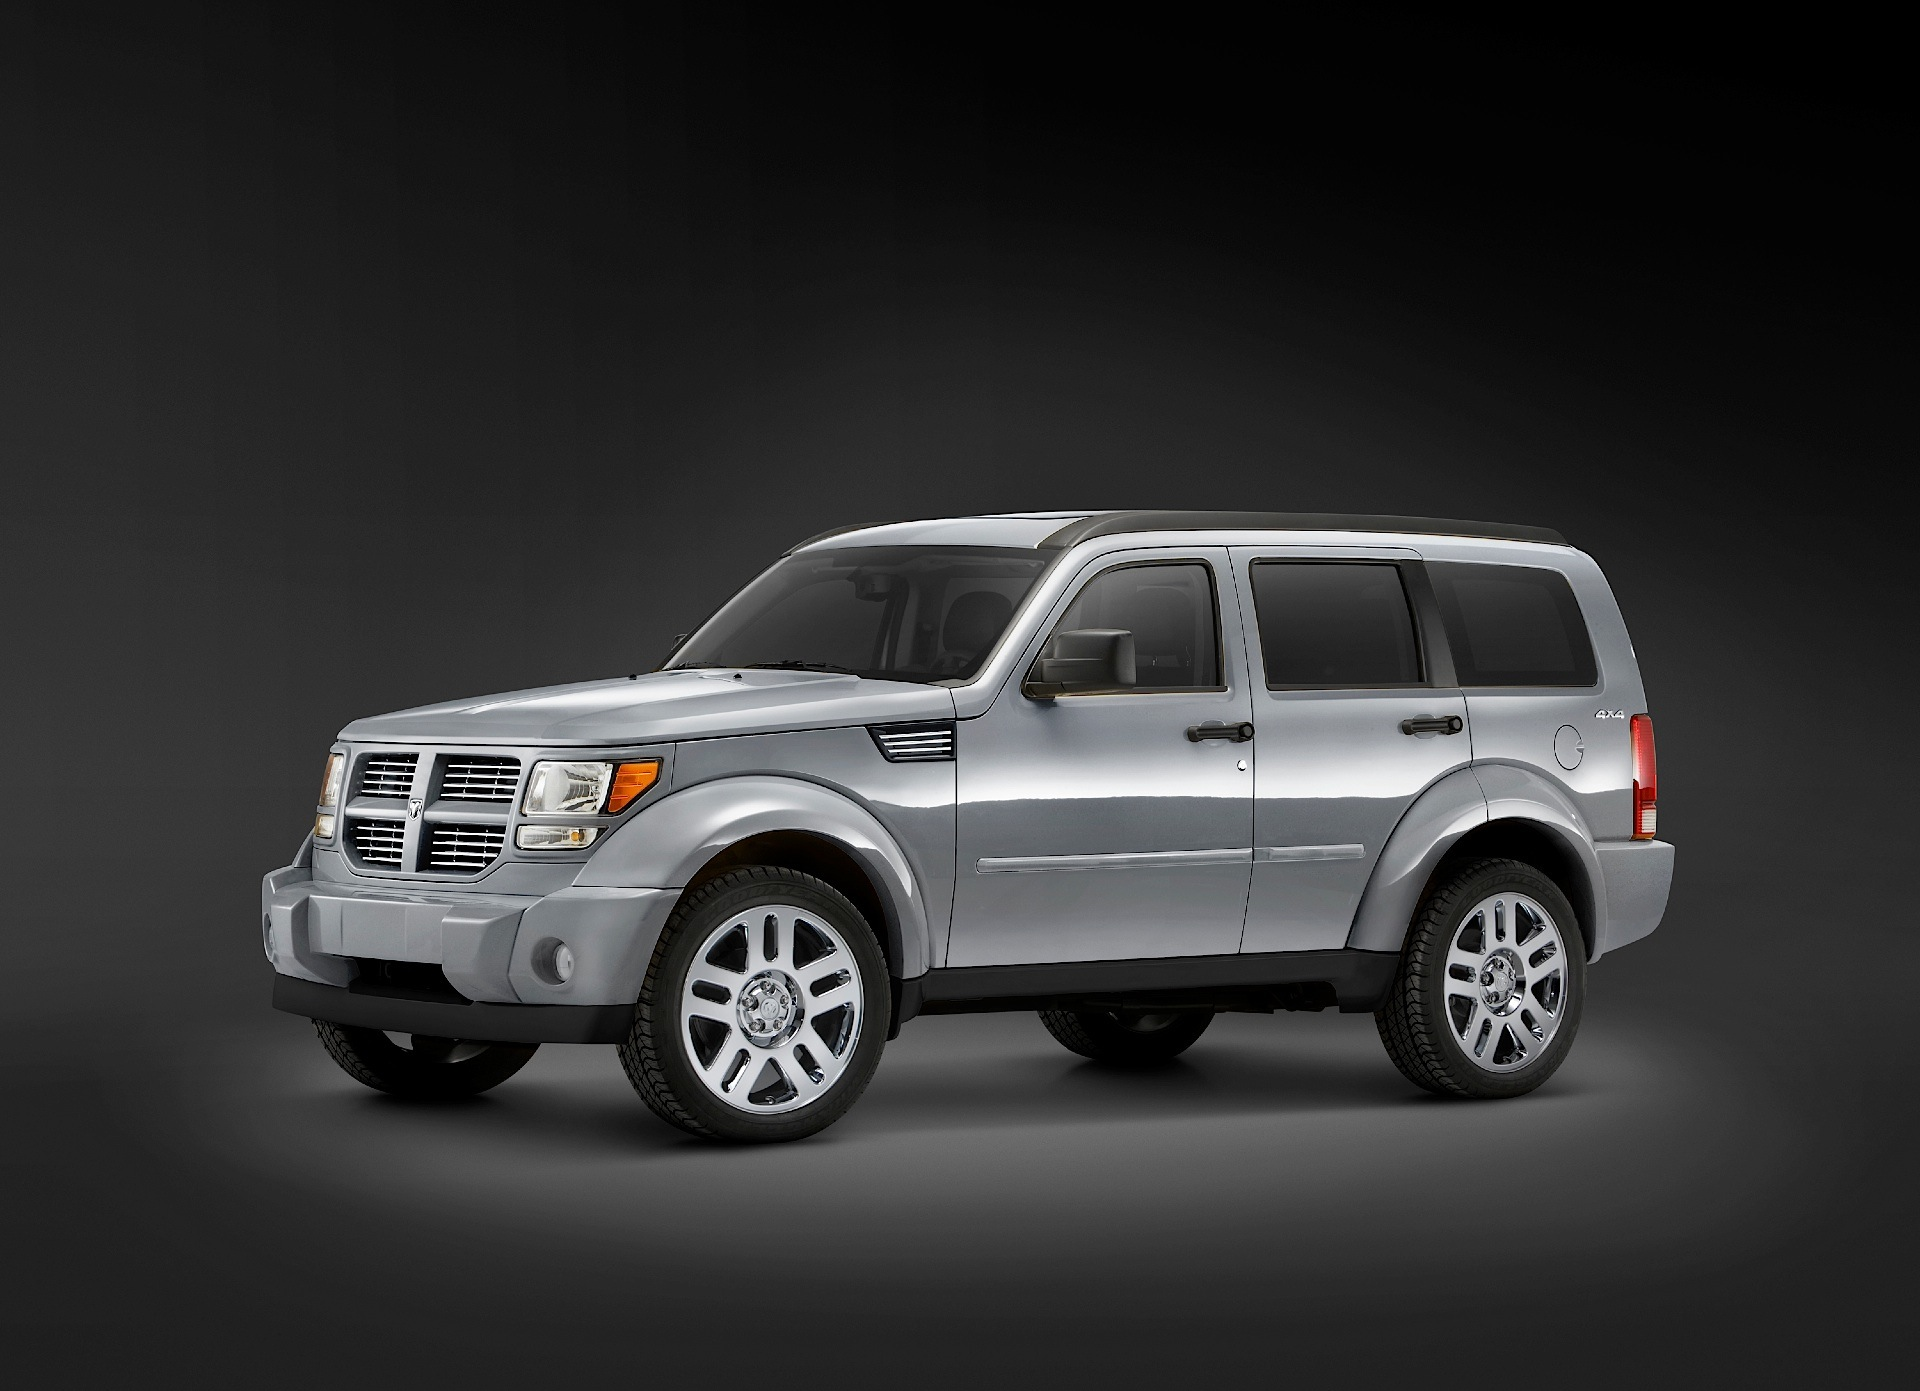 Rockstar in addition Hqdefault as well Hqdefault as well Maxresdefault as well Dodgenitrointerior. on 2006 dodge nitro